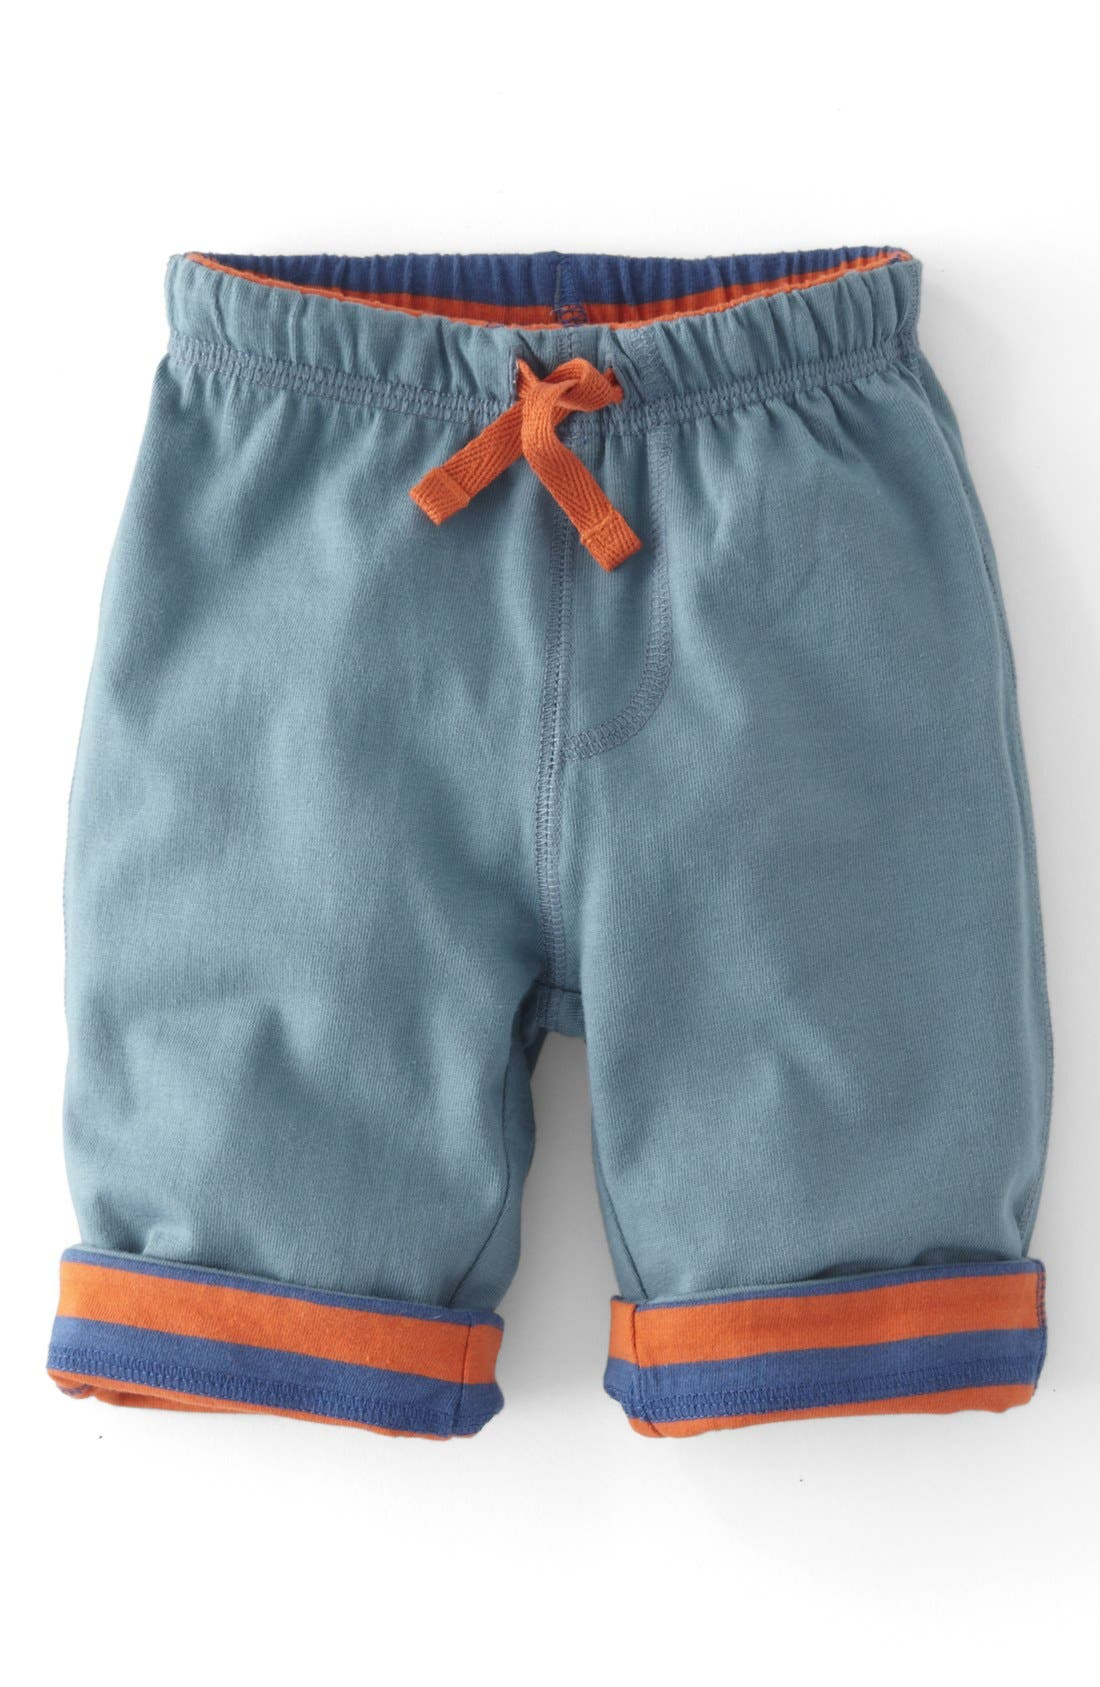 Main Image - Mini Boden Reversible Pants (Baby Boys)